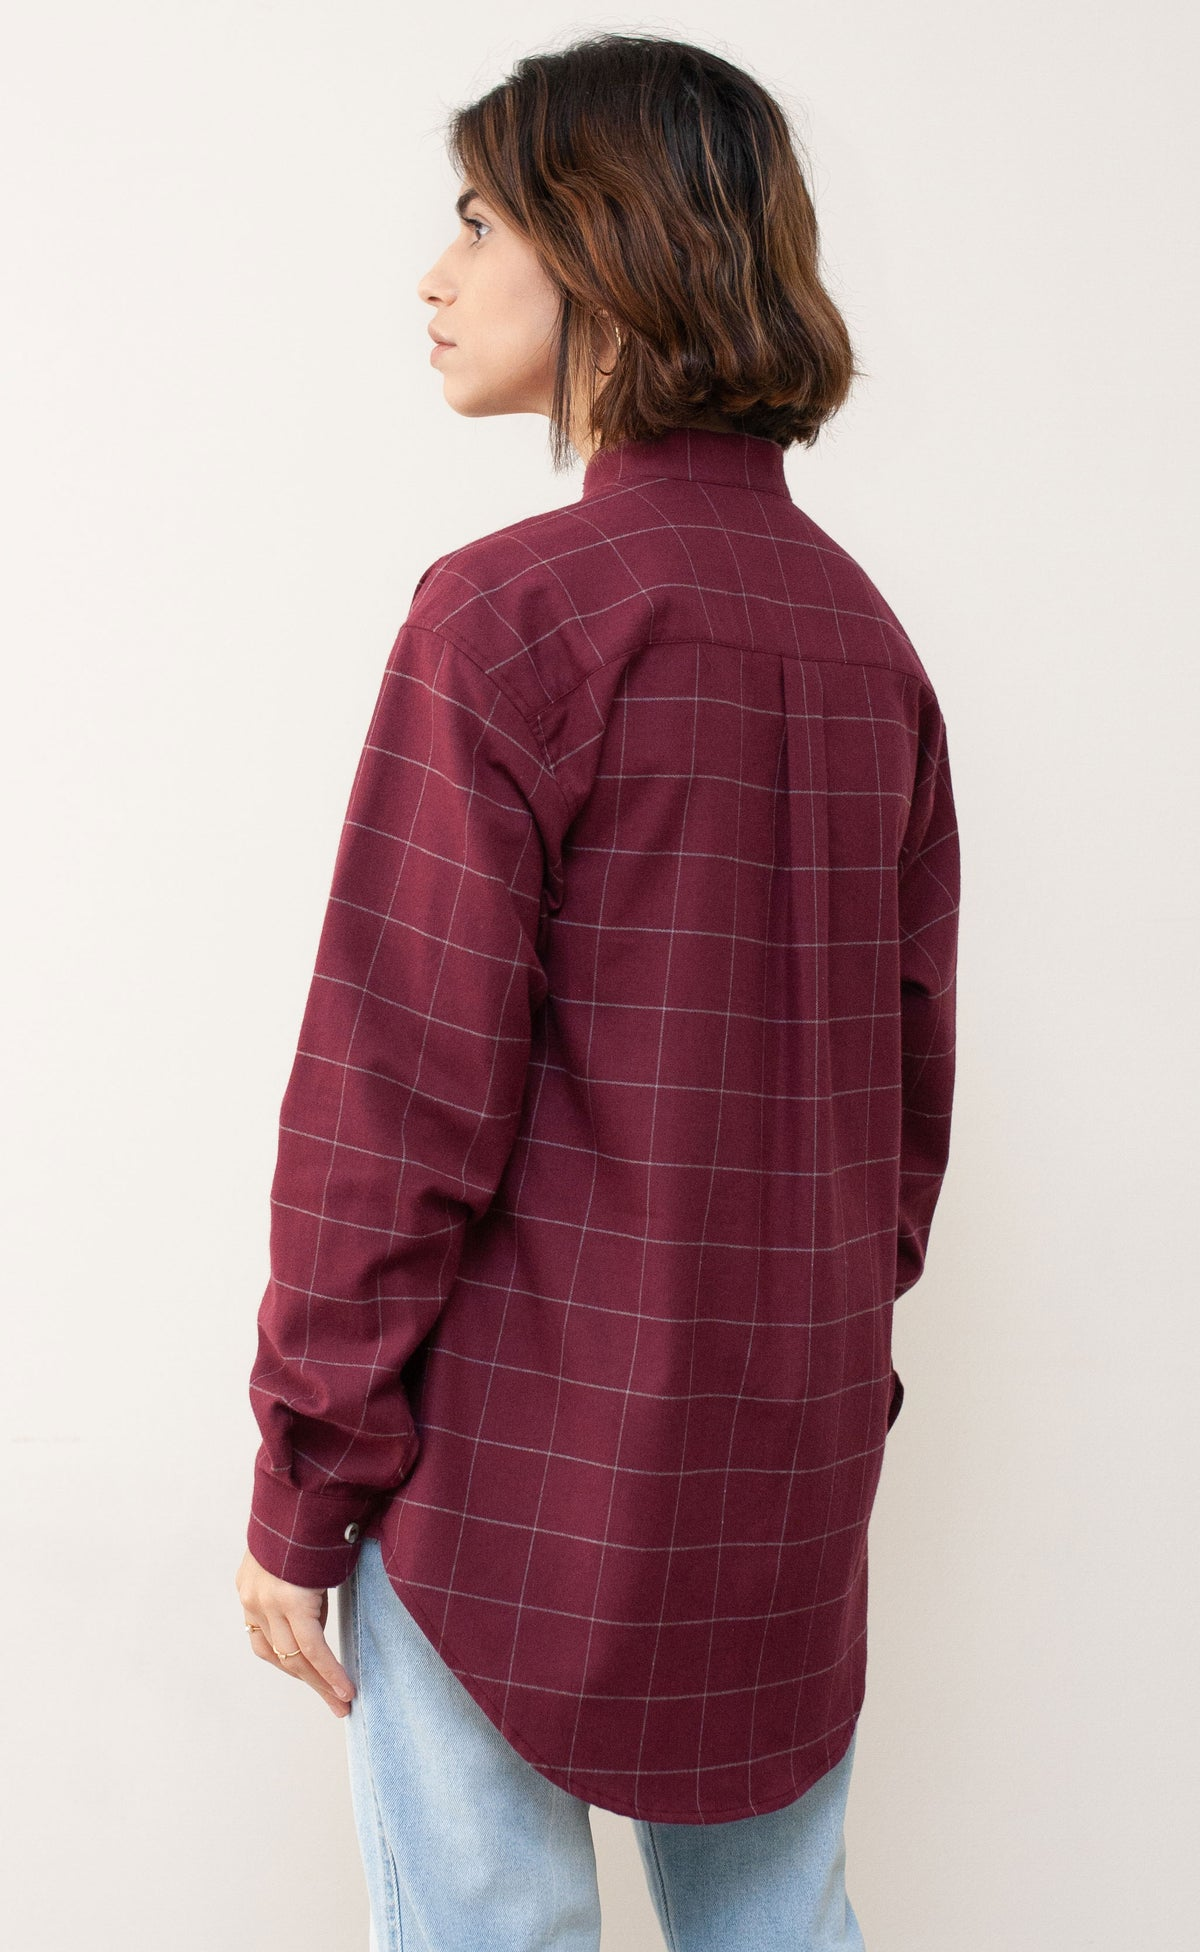 The Modernist - Wayward Fit Tunic